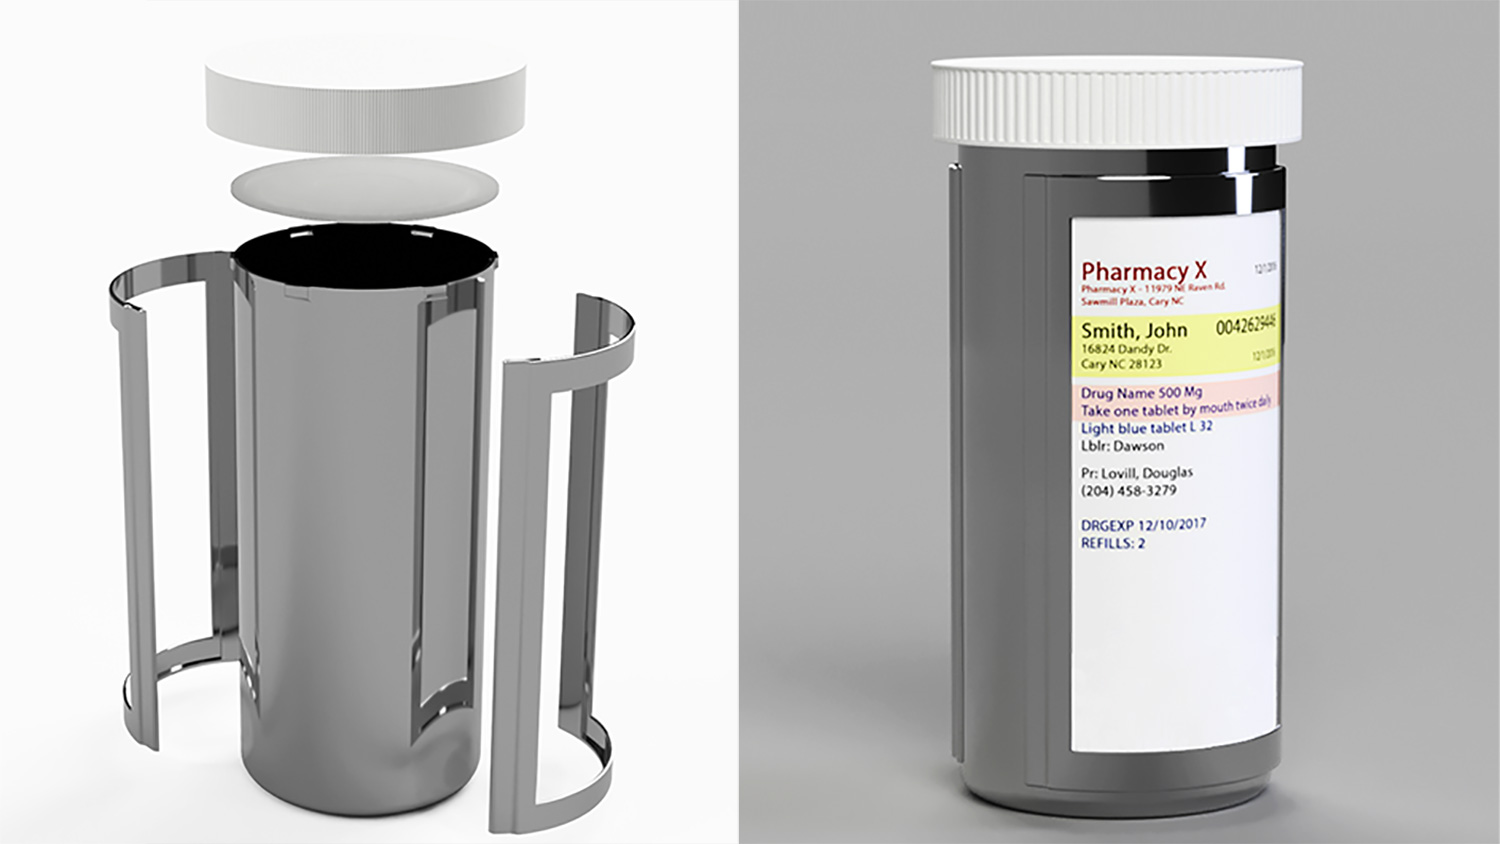 Winning Student Design Reduces Prescription Bottle Waste